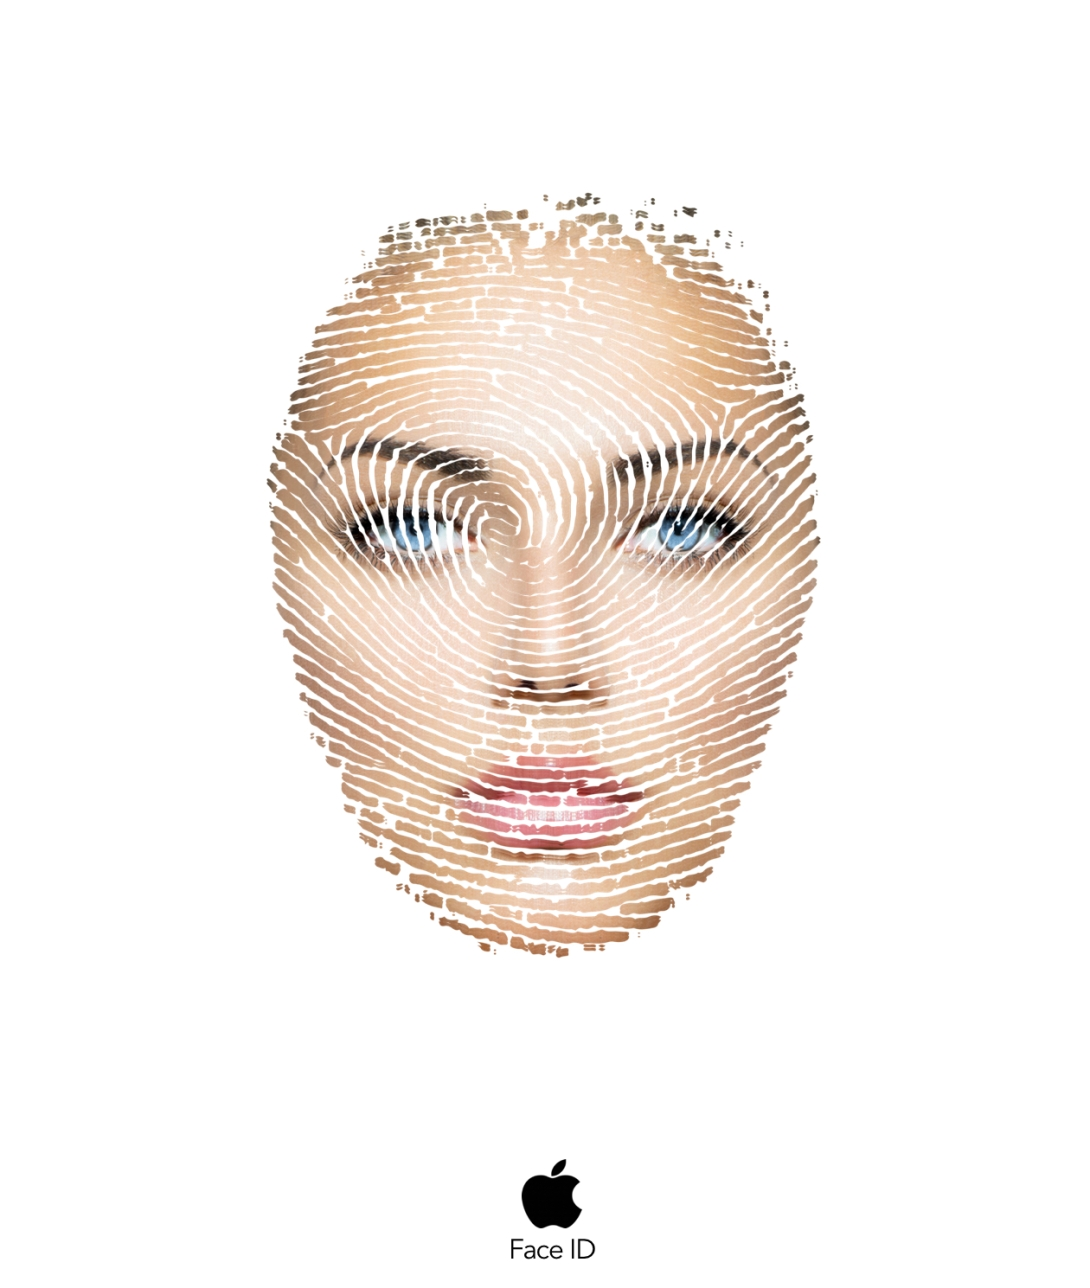 Advertising concept for FaceID